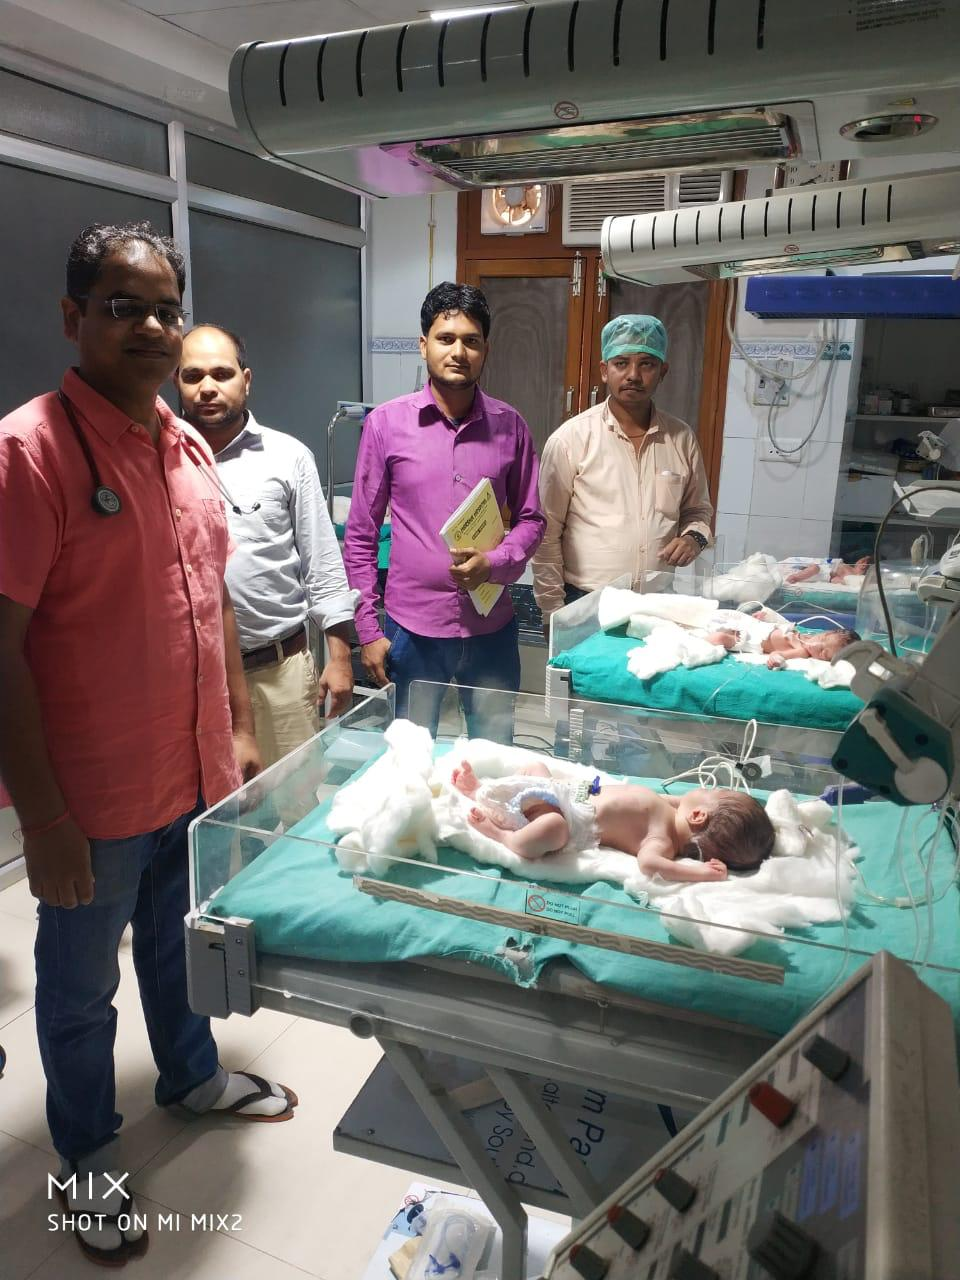 Quadruplets, Four babies, Muslim woman, UP woman delivers quadruplets, First baby, IVF technology, Twins, Triplets, Lucknow, Uttar Pradesh news, Regional news